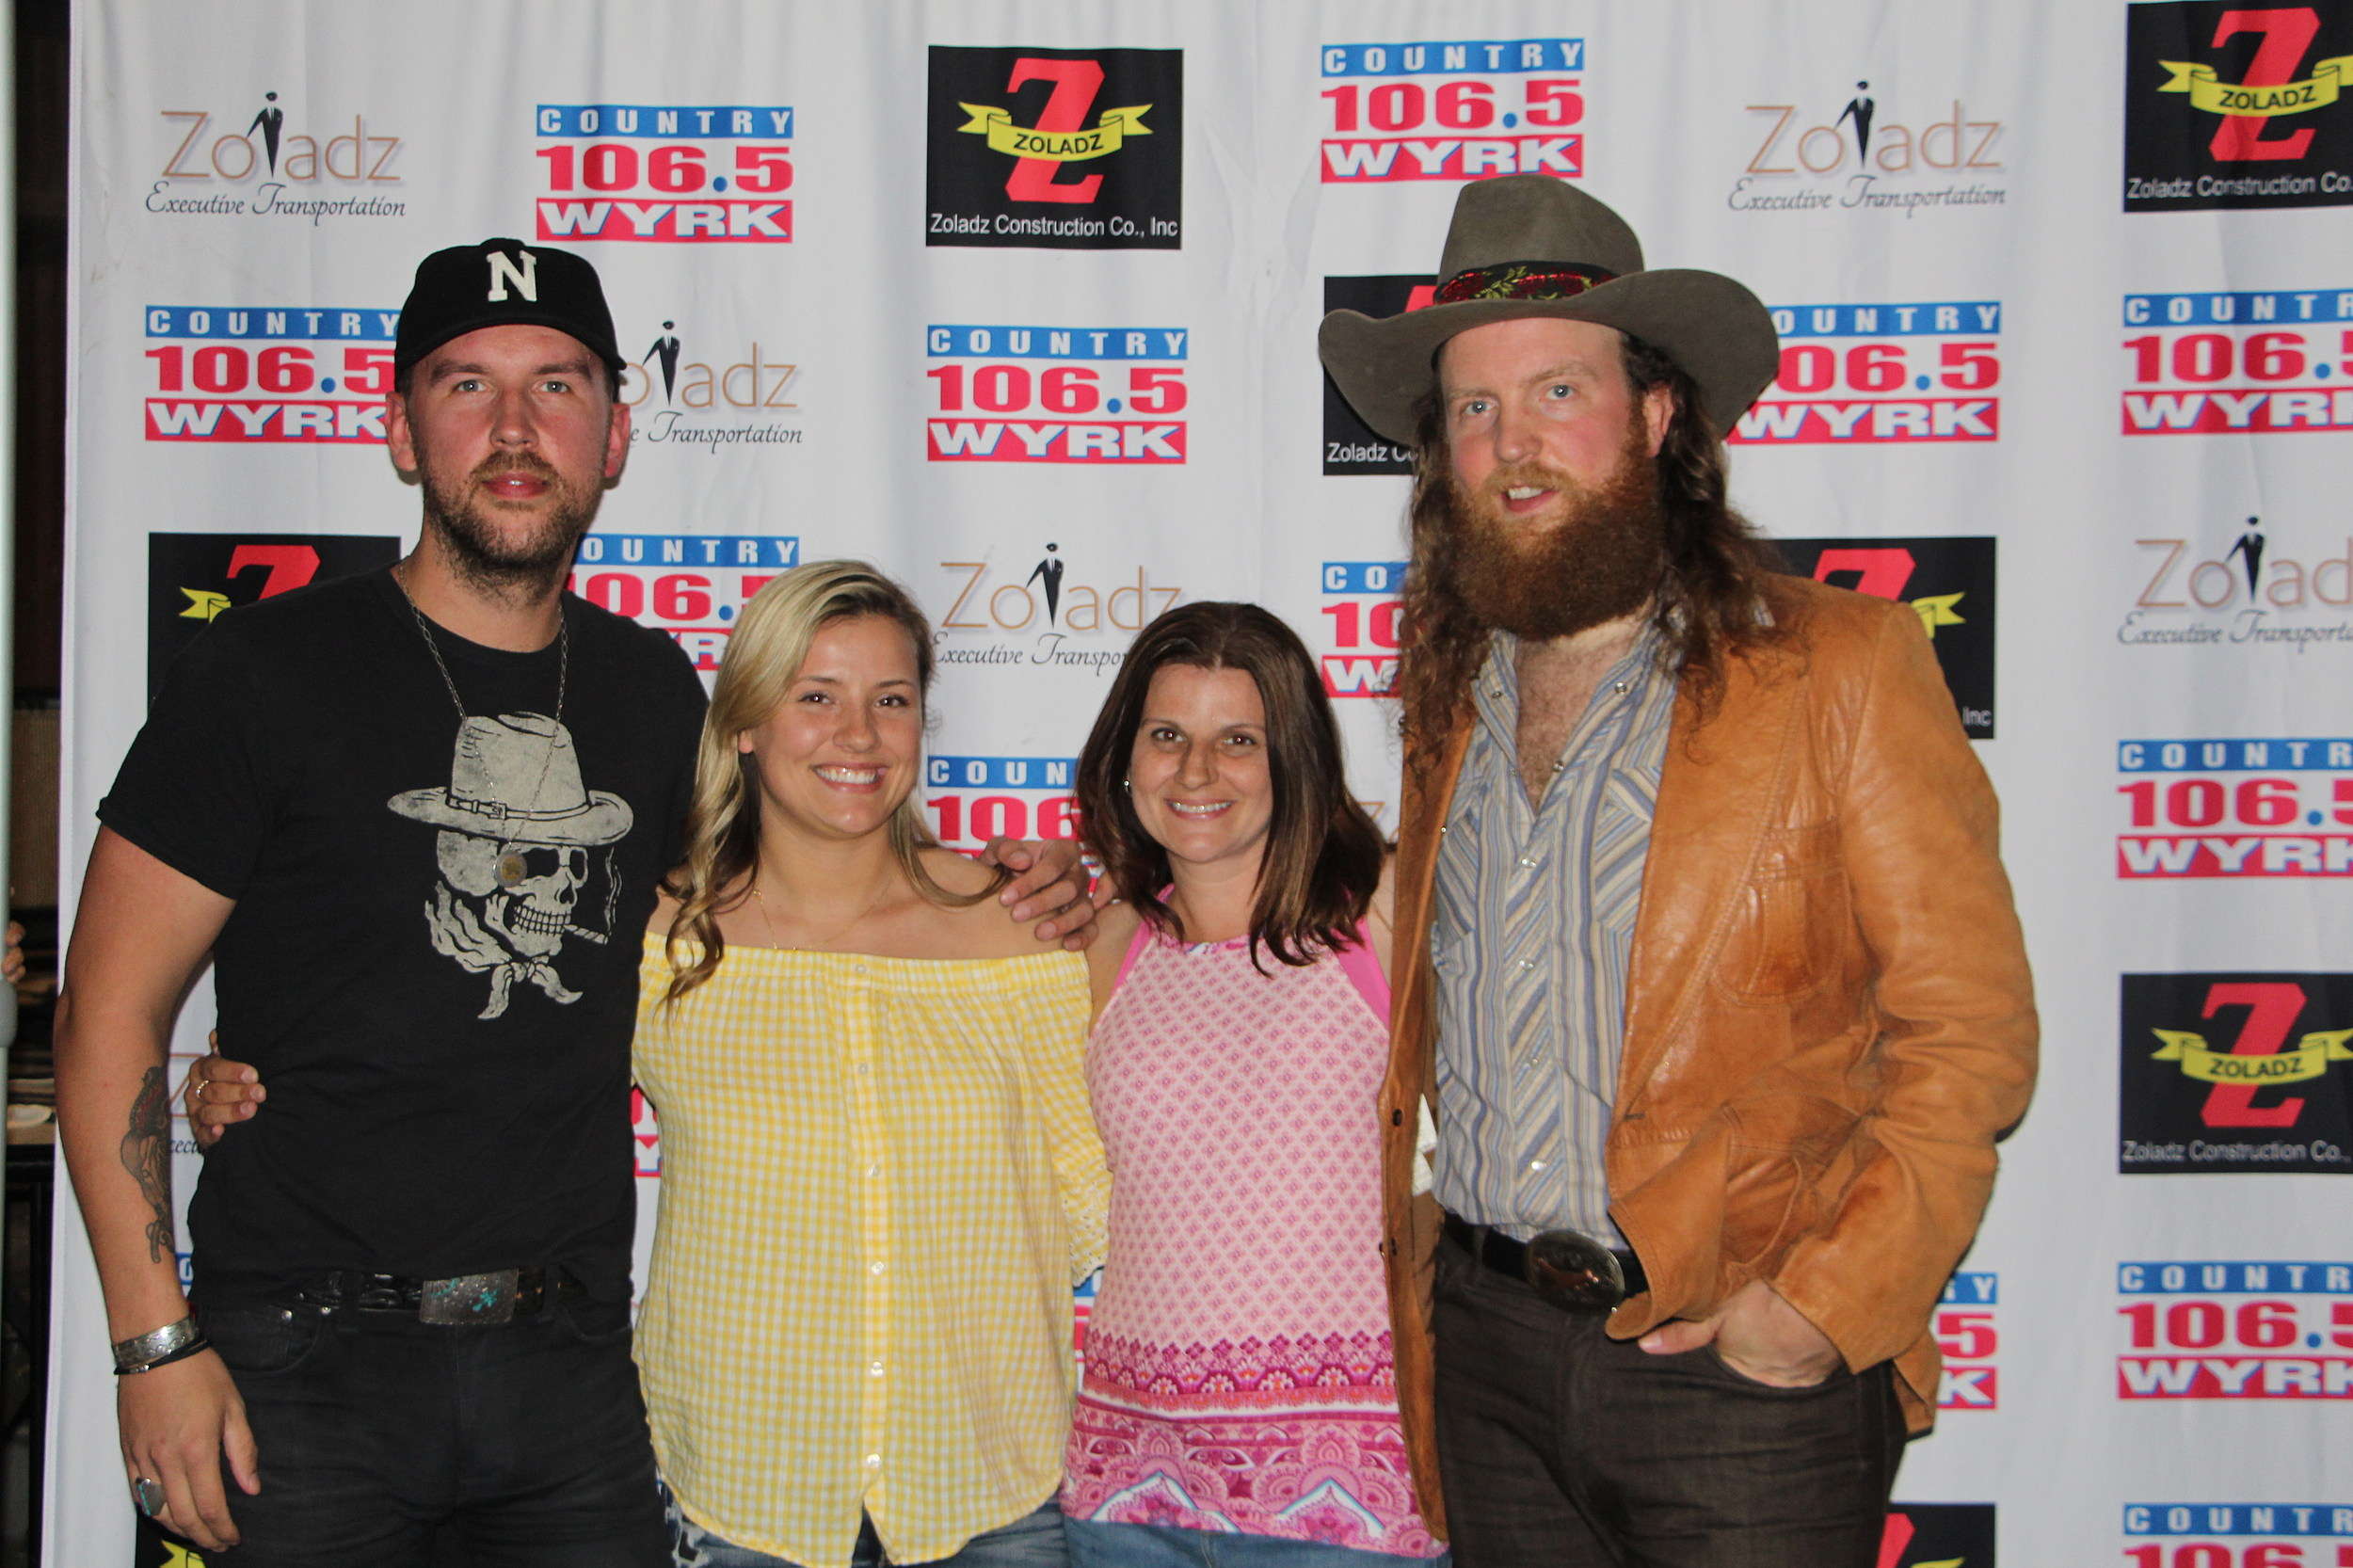 Brothers osborne meet and greets m4hsunfo